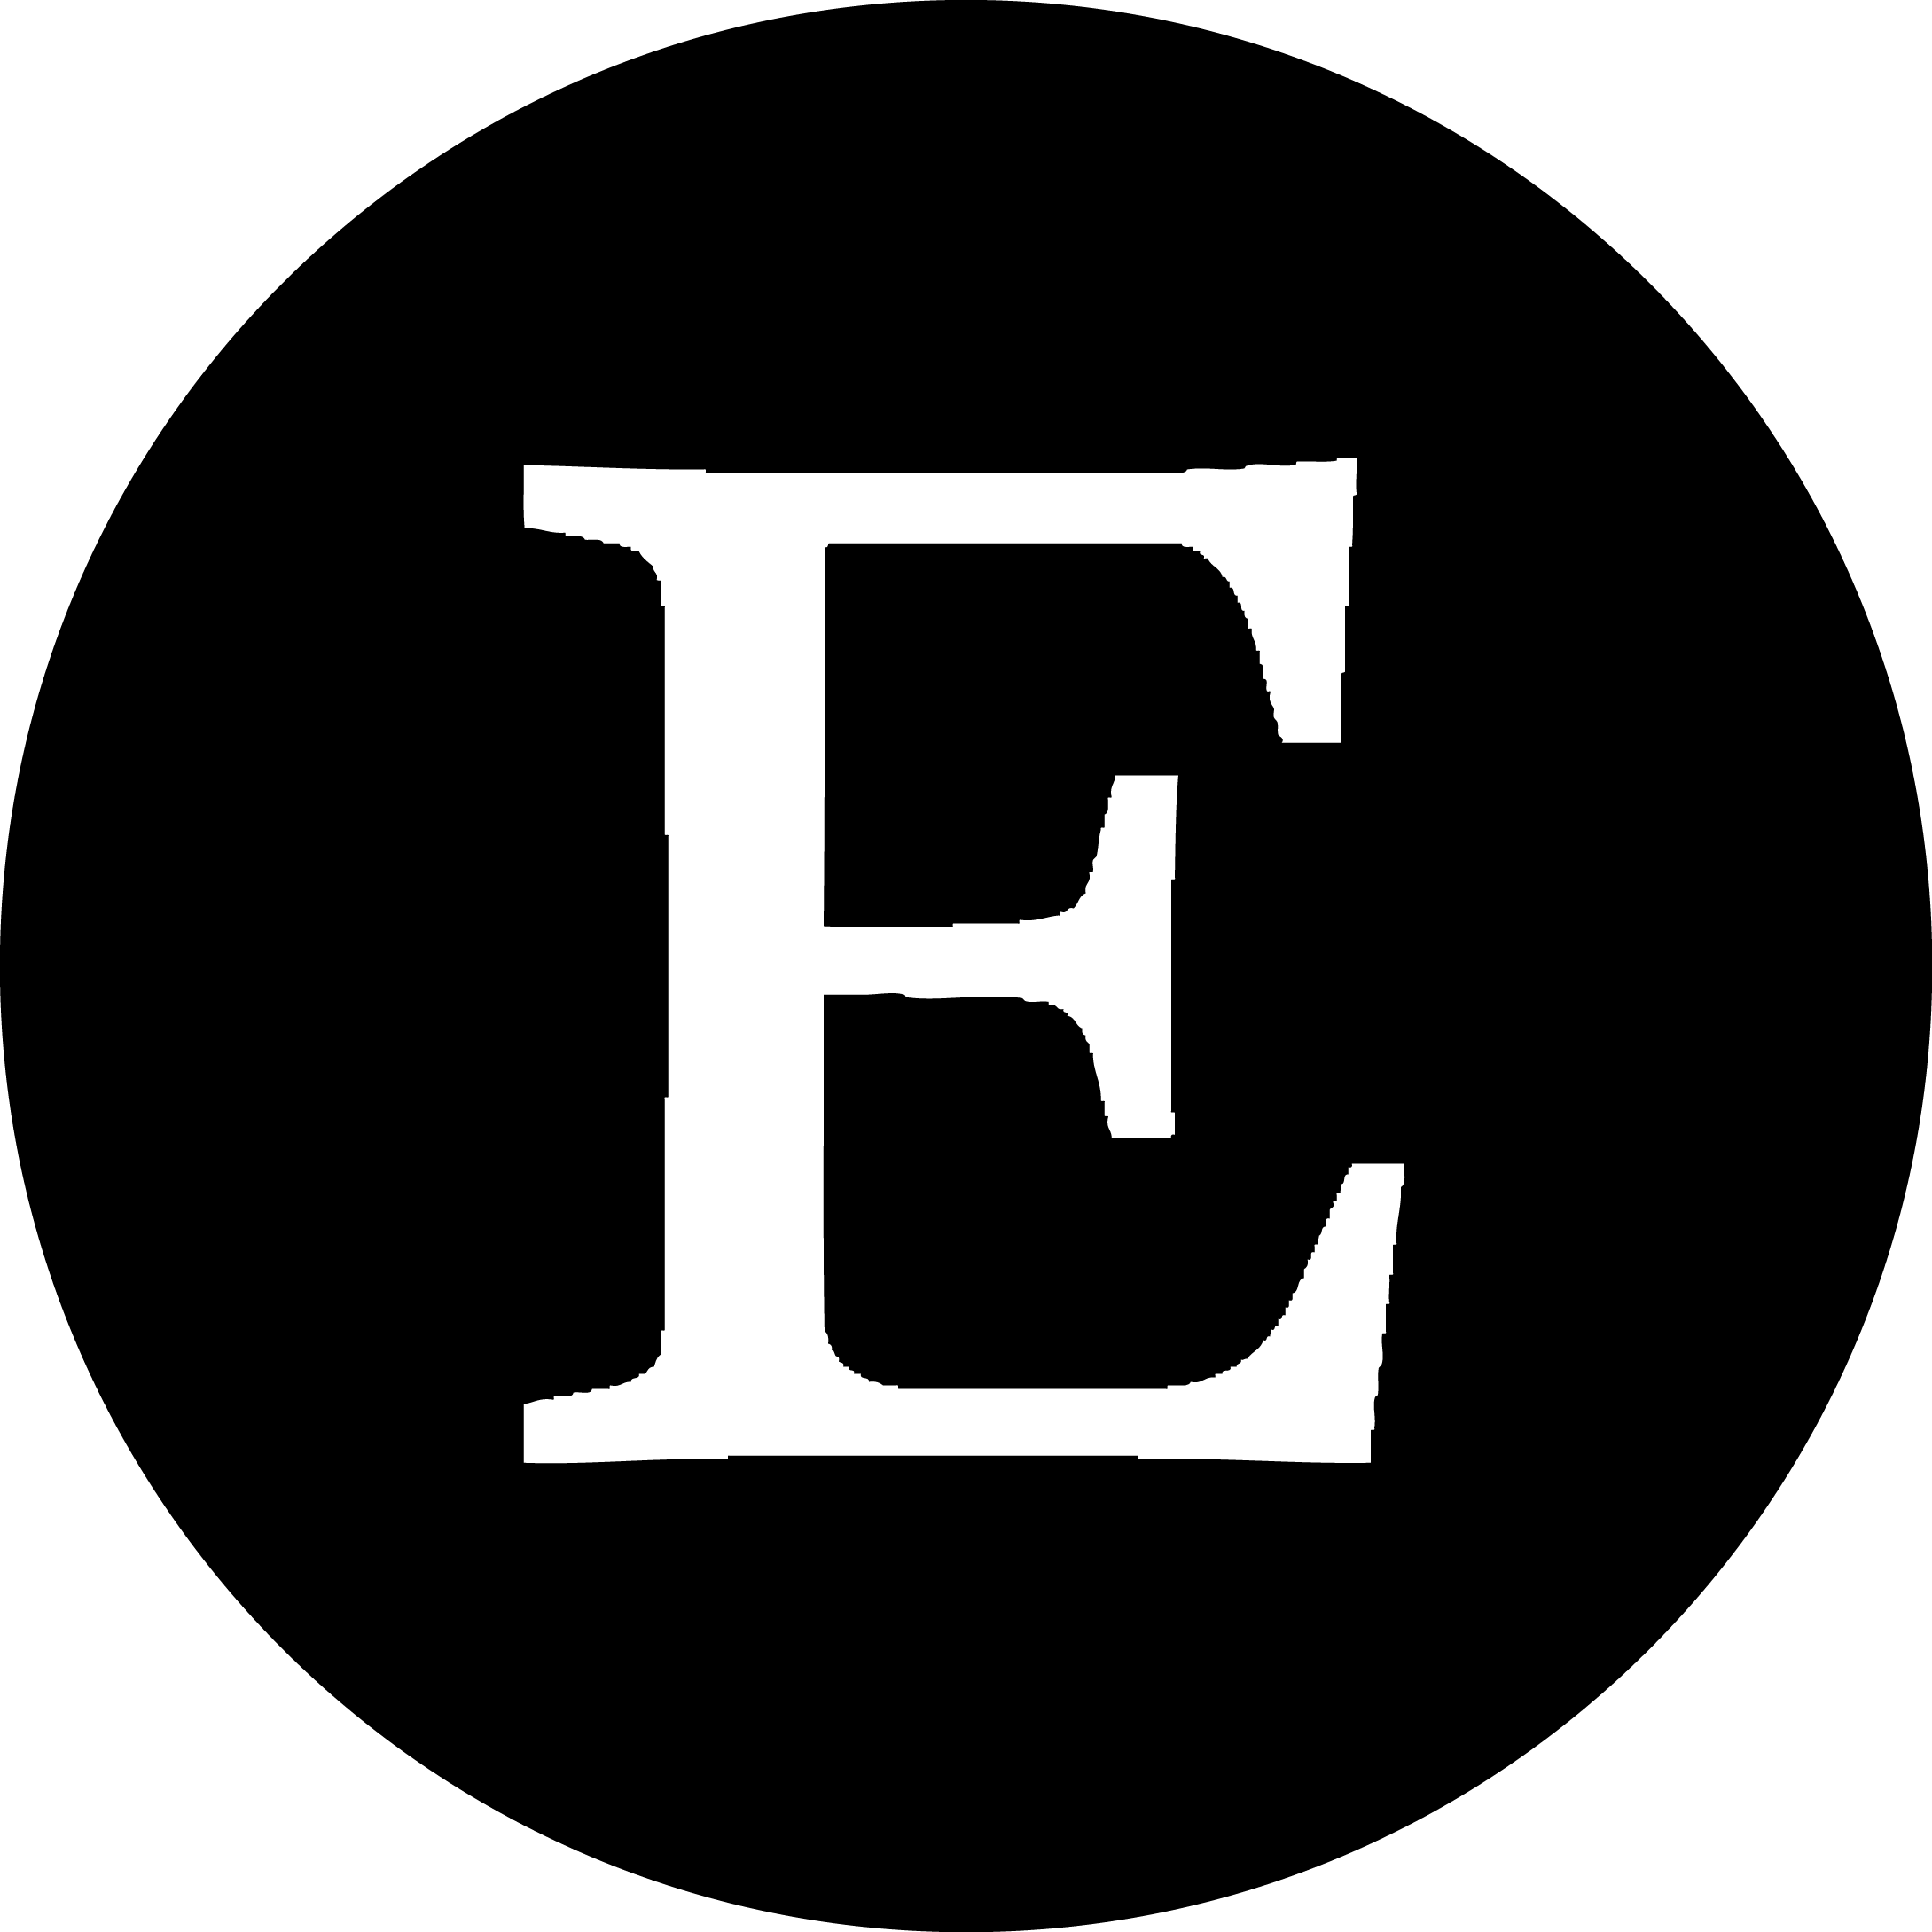 Etsy logo png. Belated january sales on